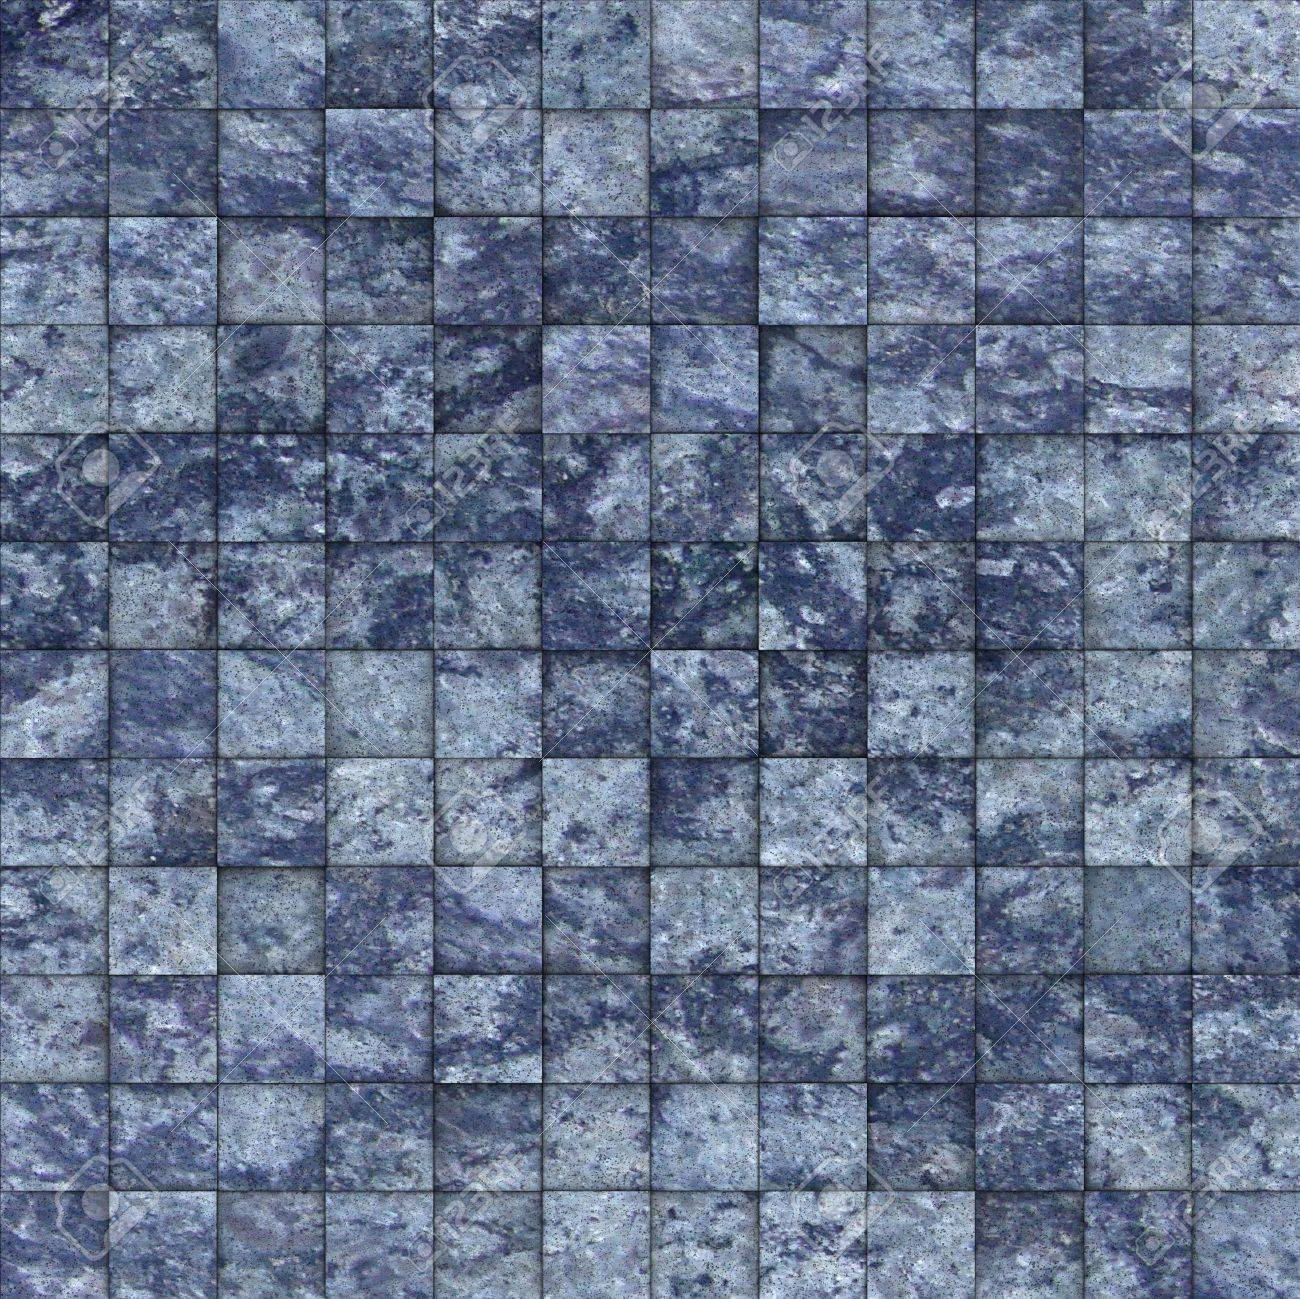 Mosaic Tile Speckled Blue Wall Floor Stock Photo, Picture And ...